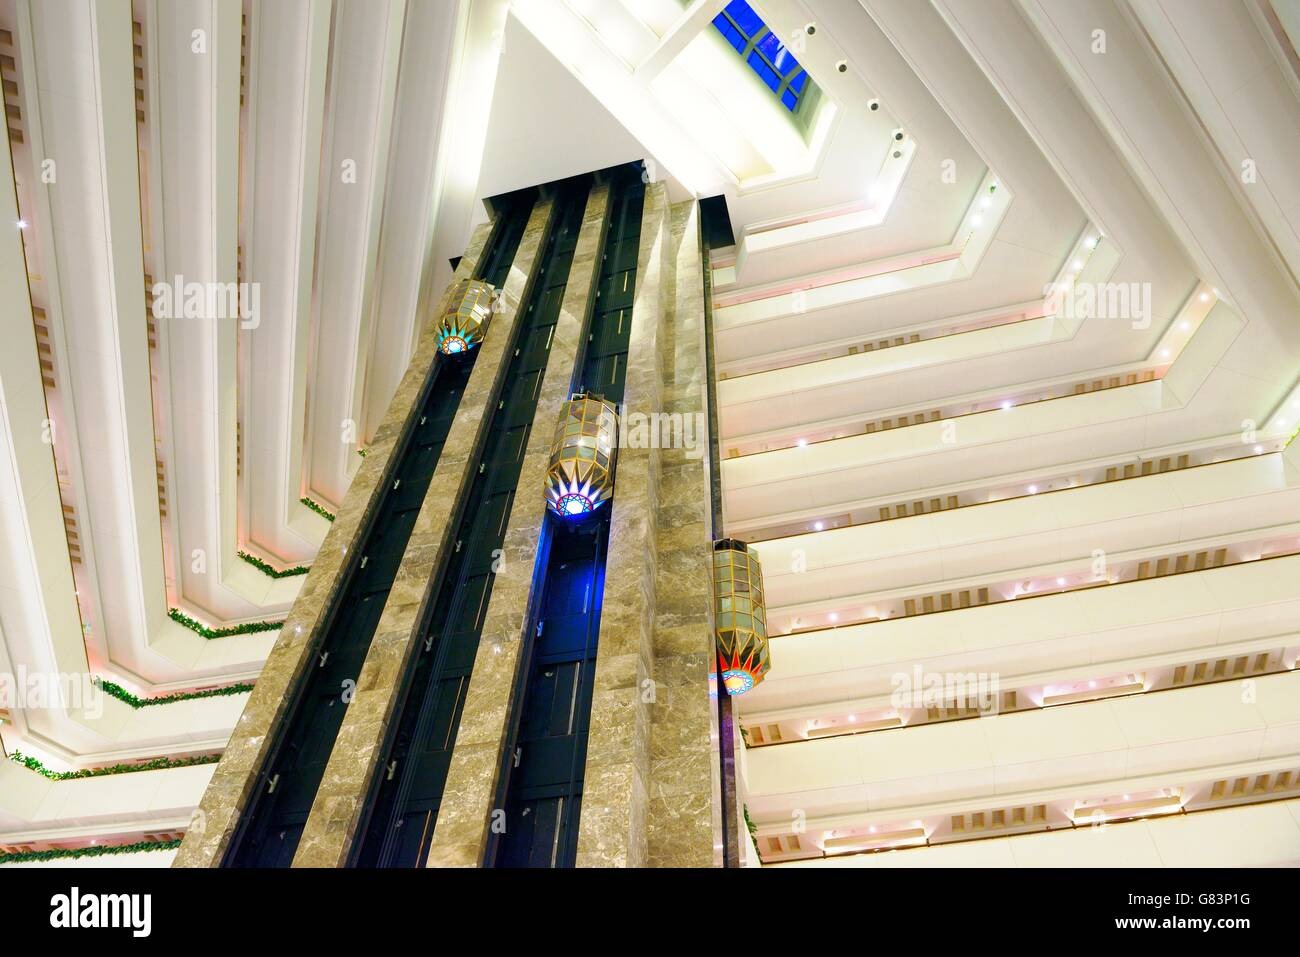 The Sheraton Grand Doha Resort and Convention Hotel on the Corniche in West Bay, Doha, Qatar. Elevators in the central - Stock Image